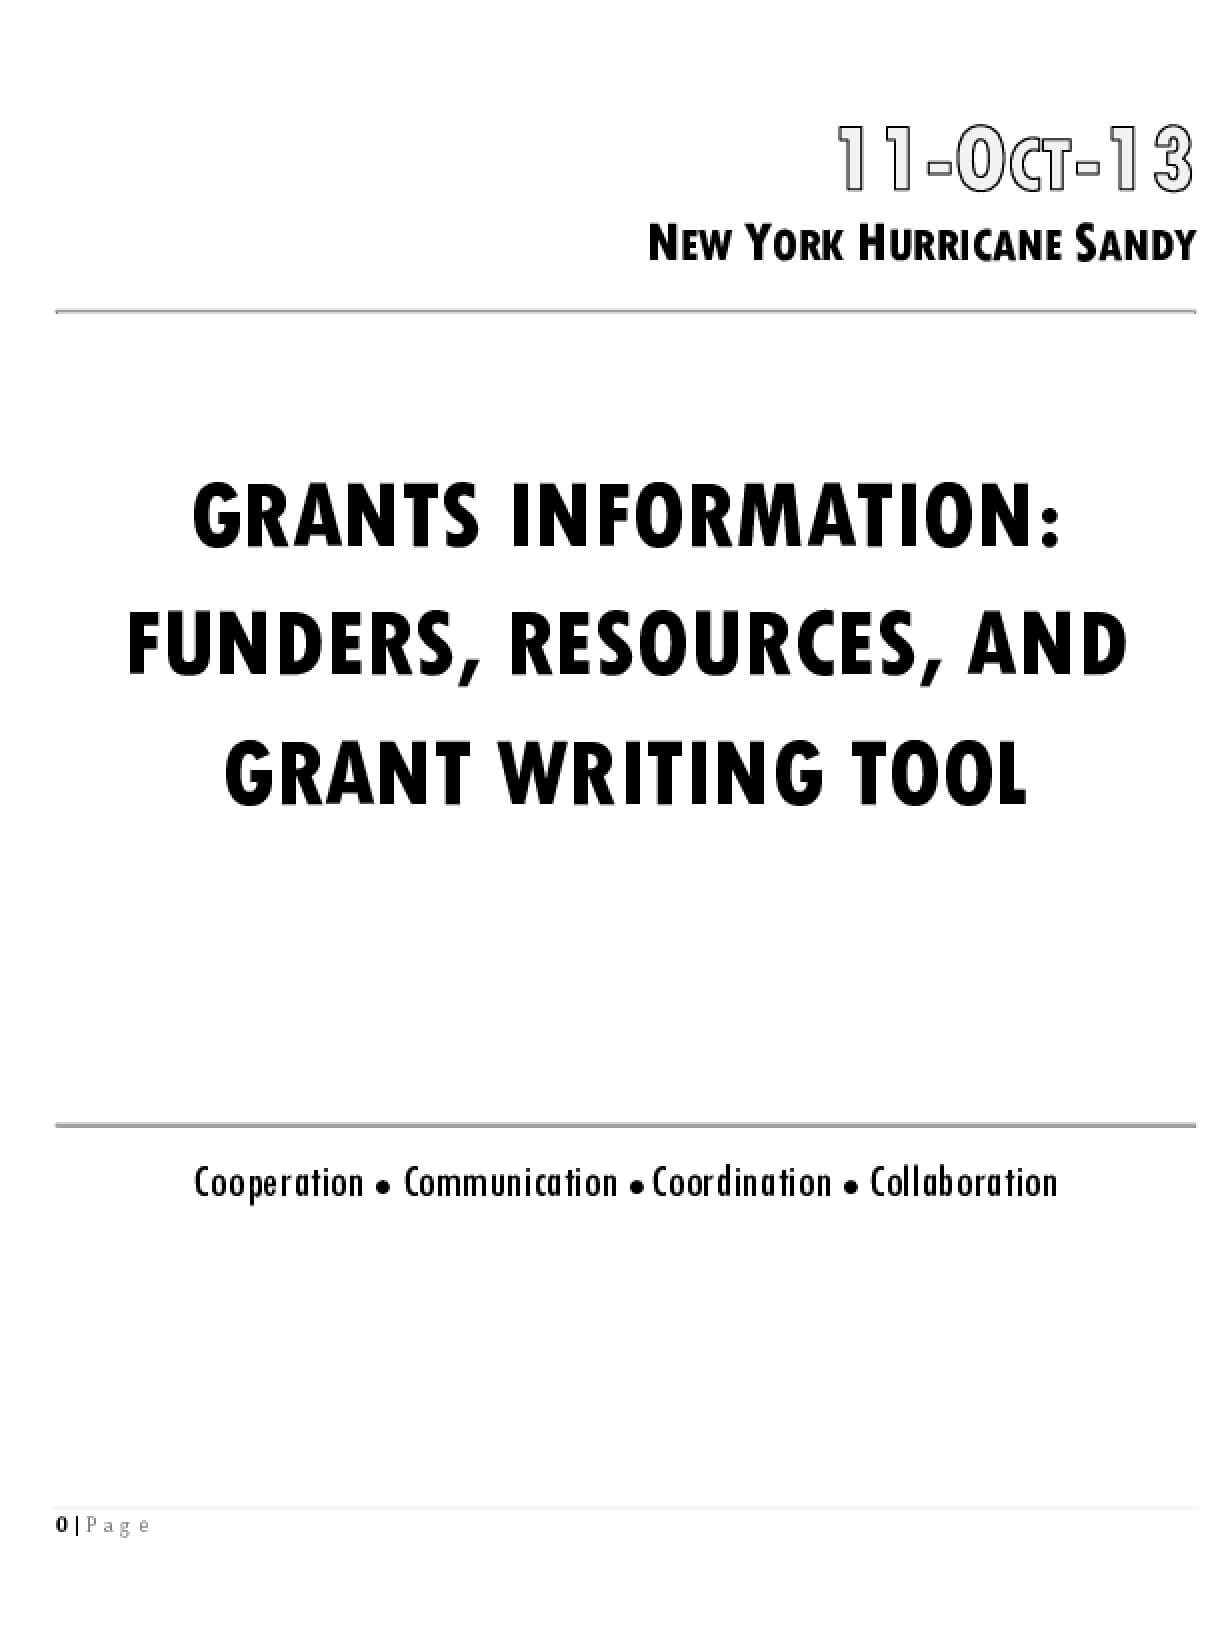 Grants Information: Funders, Resources, and Grant Writing Tool - 11-Oct-13 Hurricane Sandy